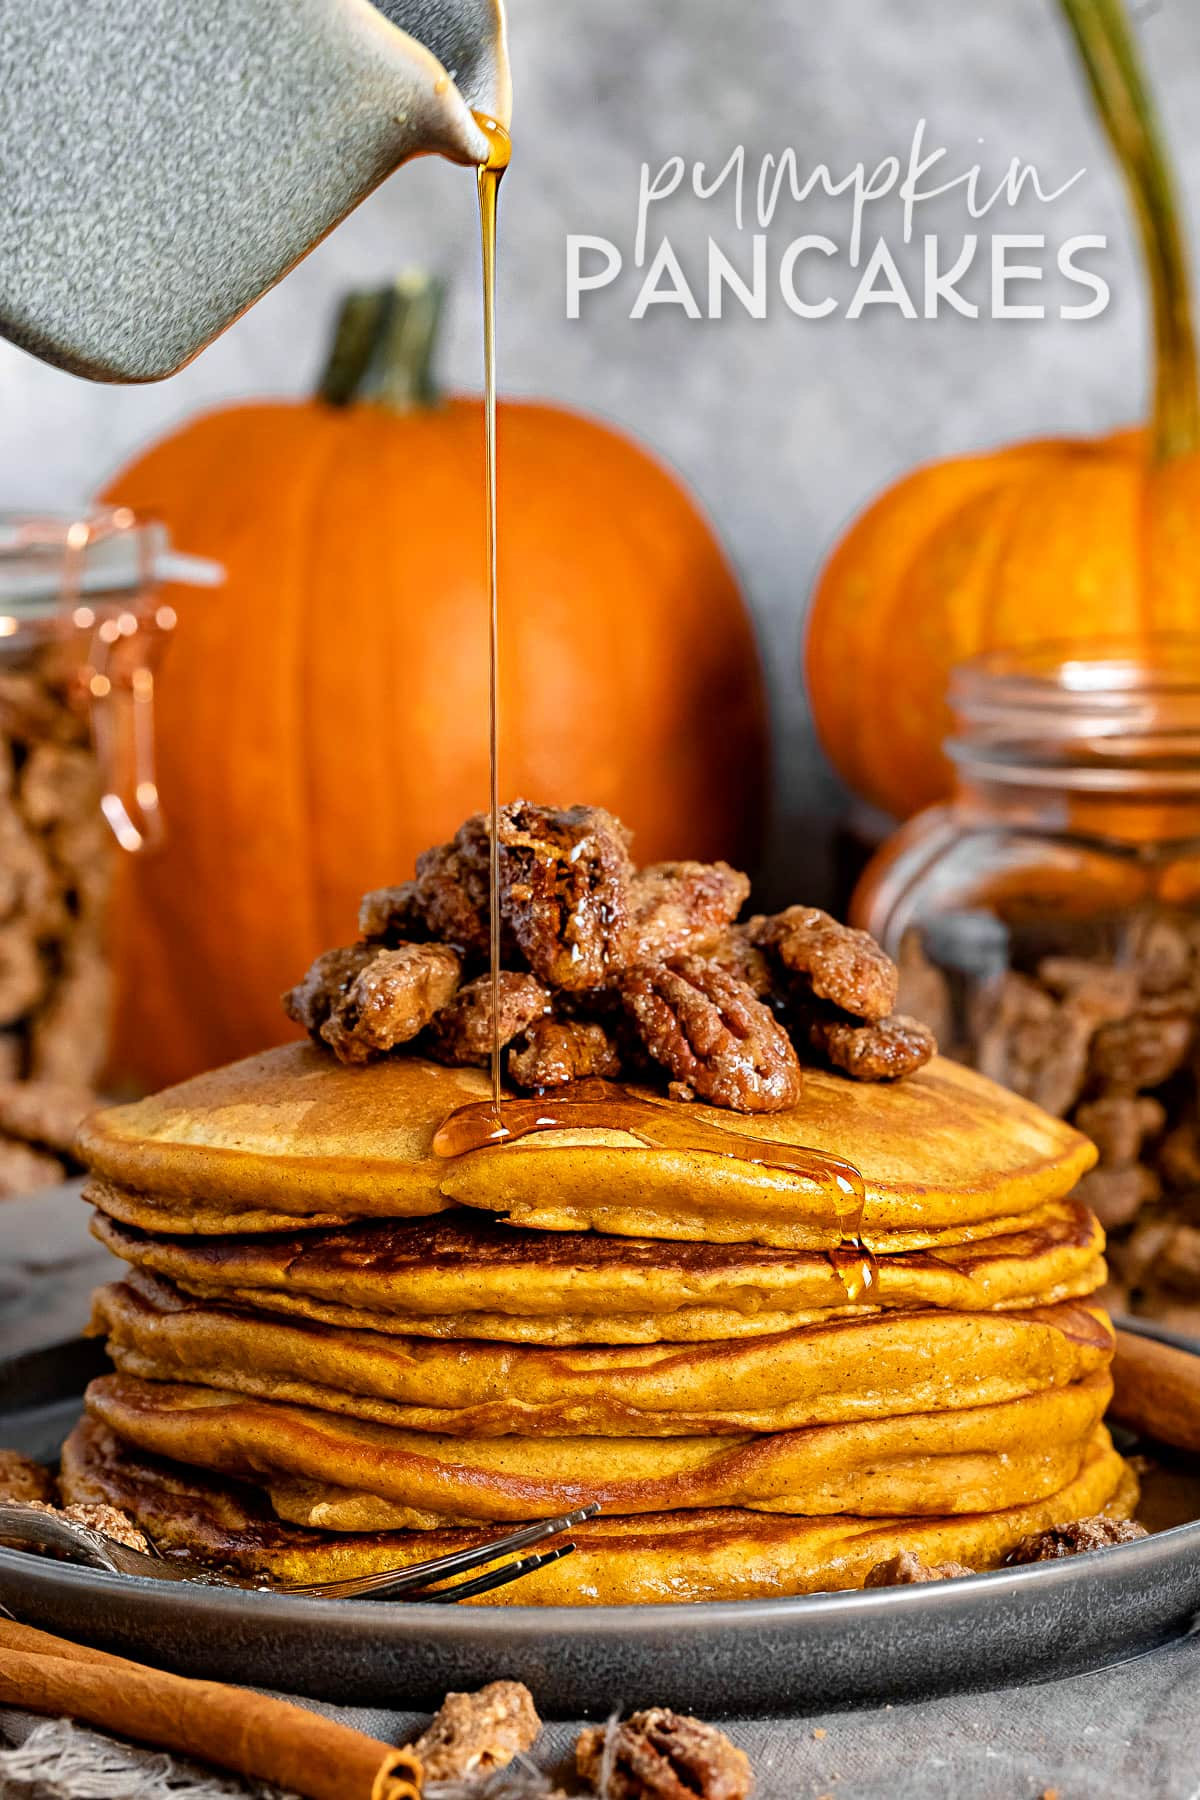 stack of pumpkin pancakes with candied pecans on top and syrup being drizzled onto pancakes